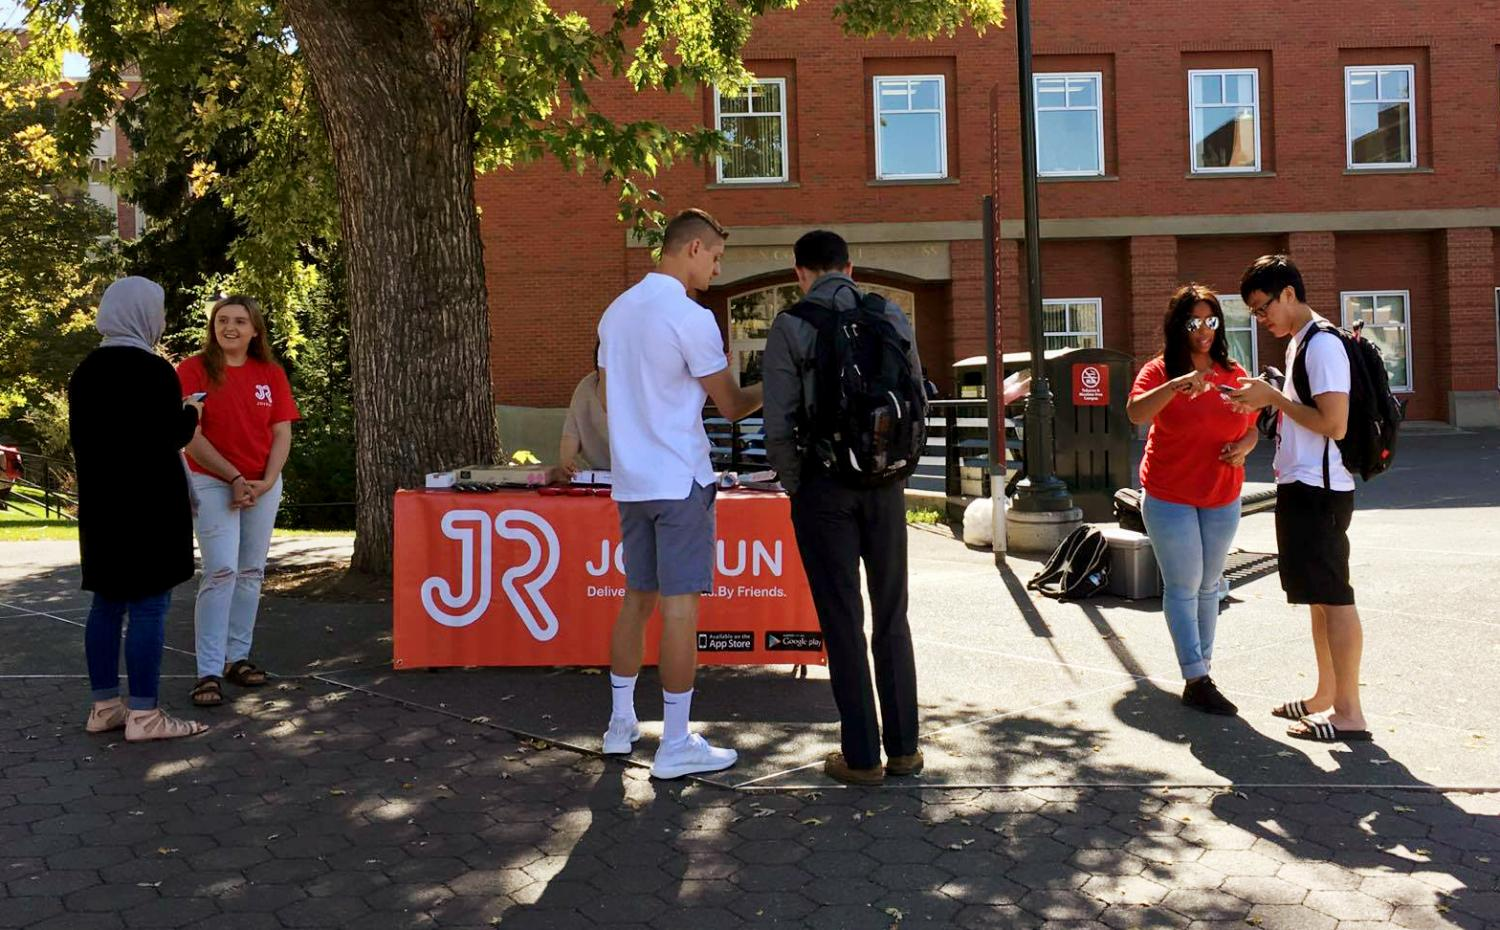 Student interns speak with people passing by on the Glenn Terrell Friendship Mall, offering free food, such as pizza and donuts, to those who sign up on the app.